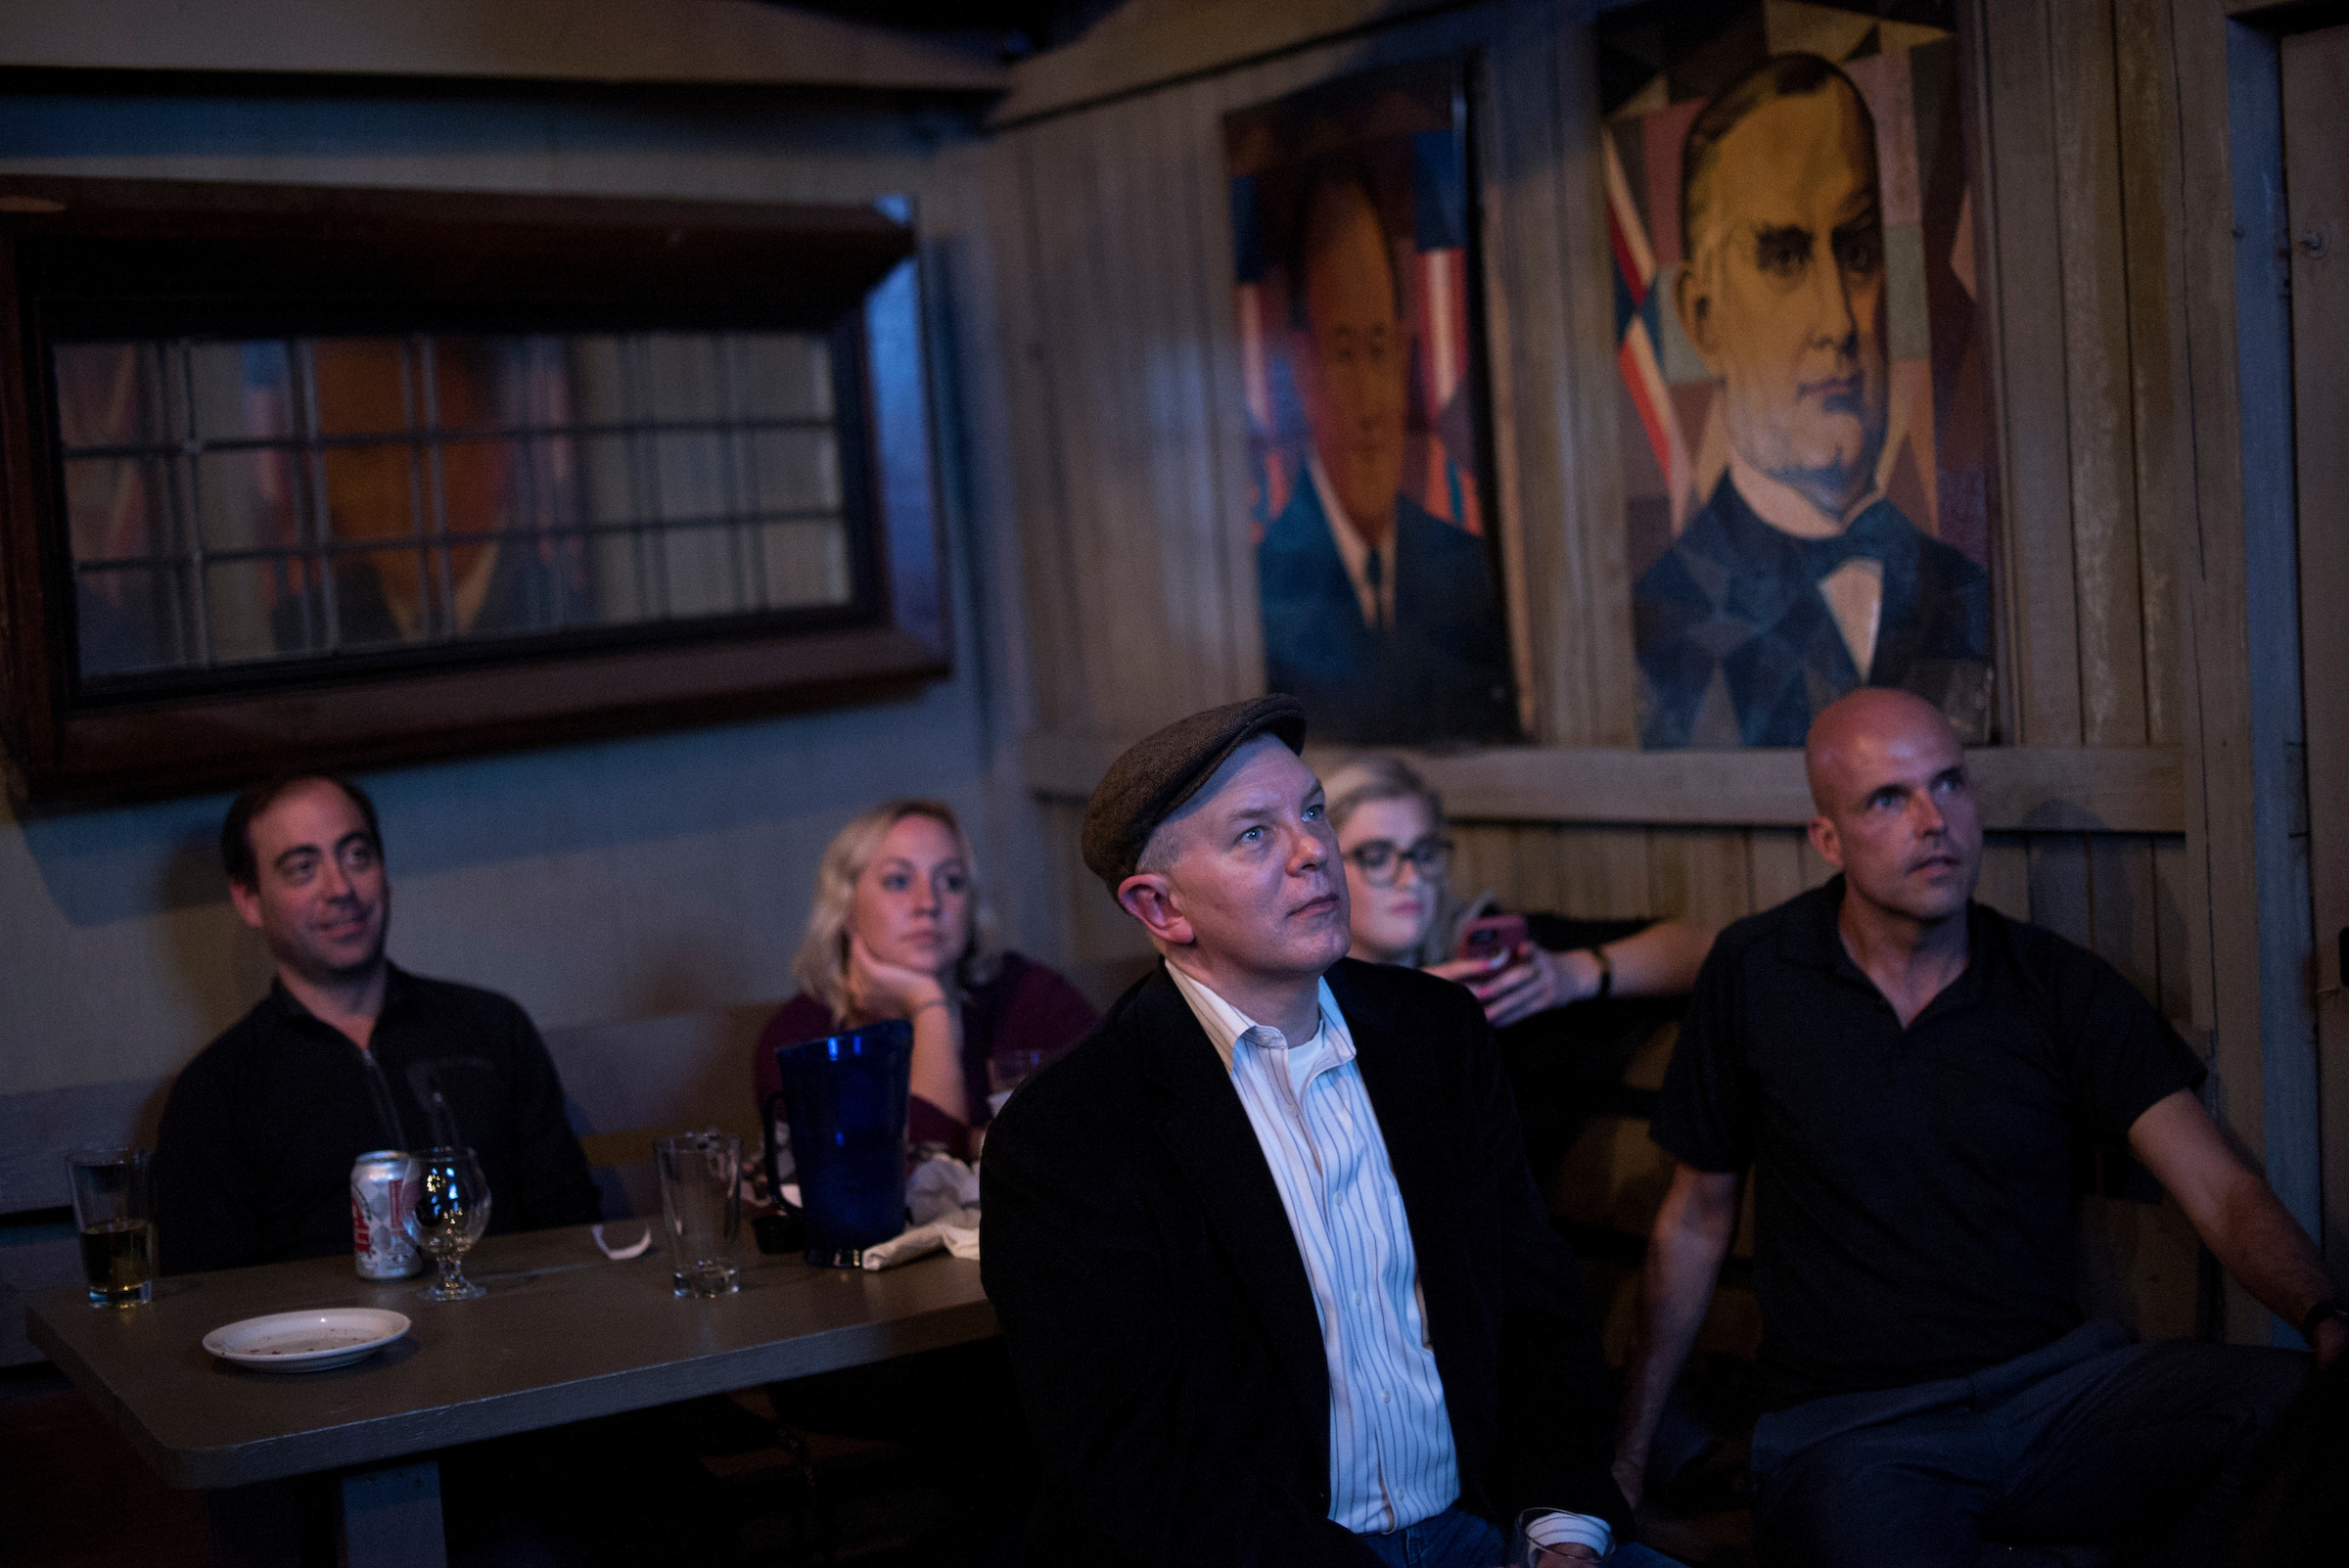 Guests watch the last presidential debate in 2016 at Capitol Lounge on Pennsylvania Avenue in Washington. (Tom Williams/CQ Roll Call file photo)